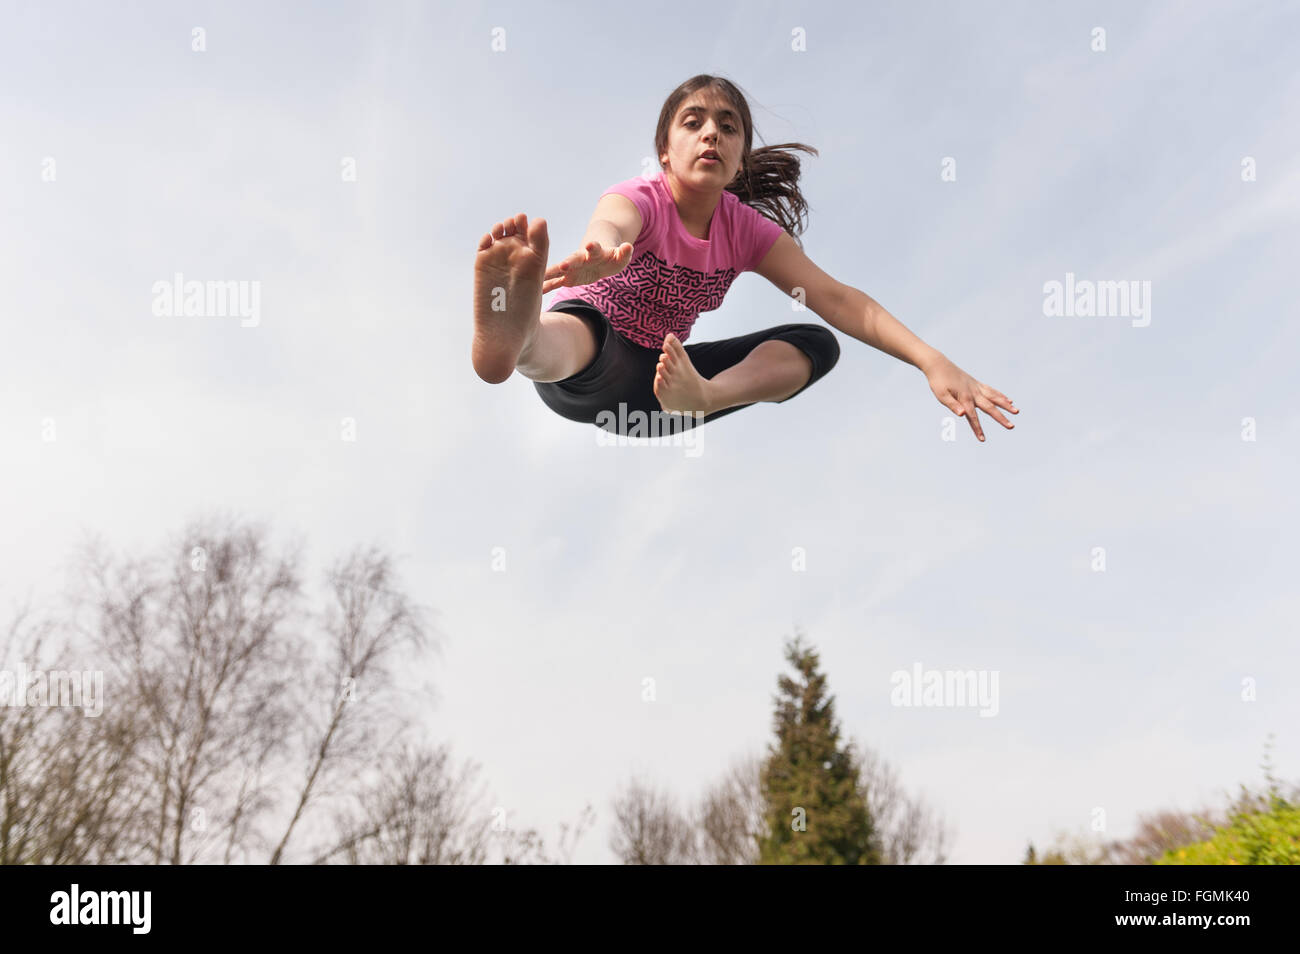 Teenager jumping high in the air bouncing off a trampoline doing acrobatics - Stock Image